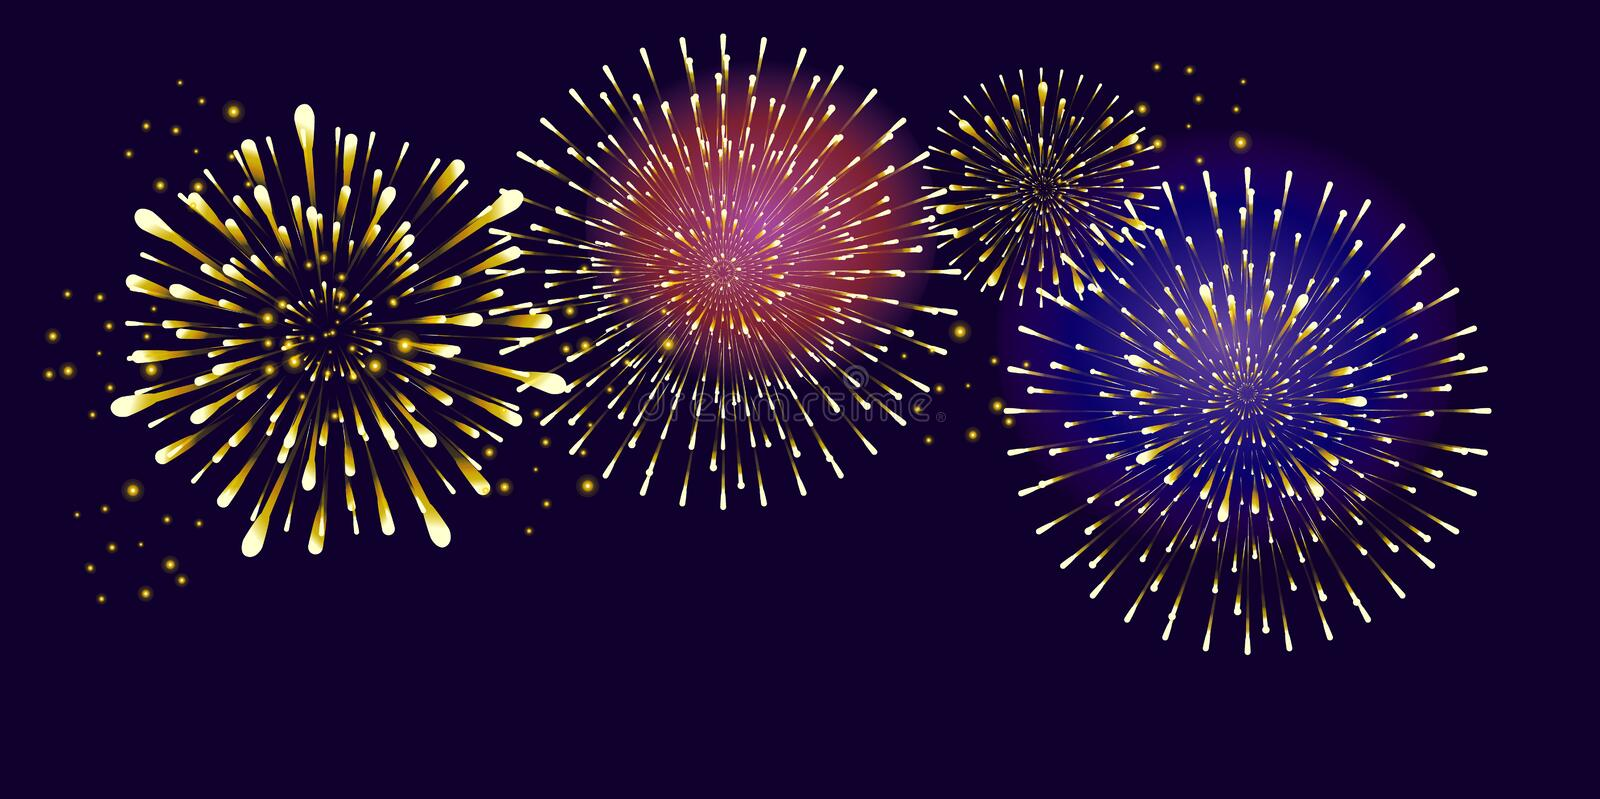 Fireworks royalty free illustration